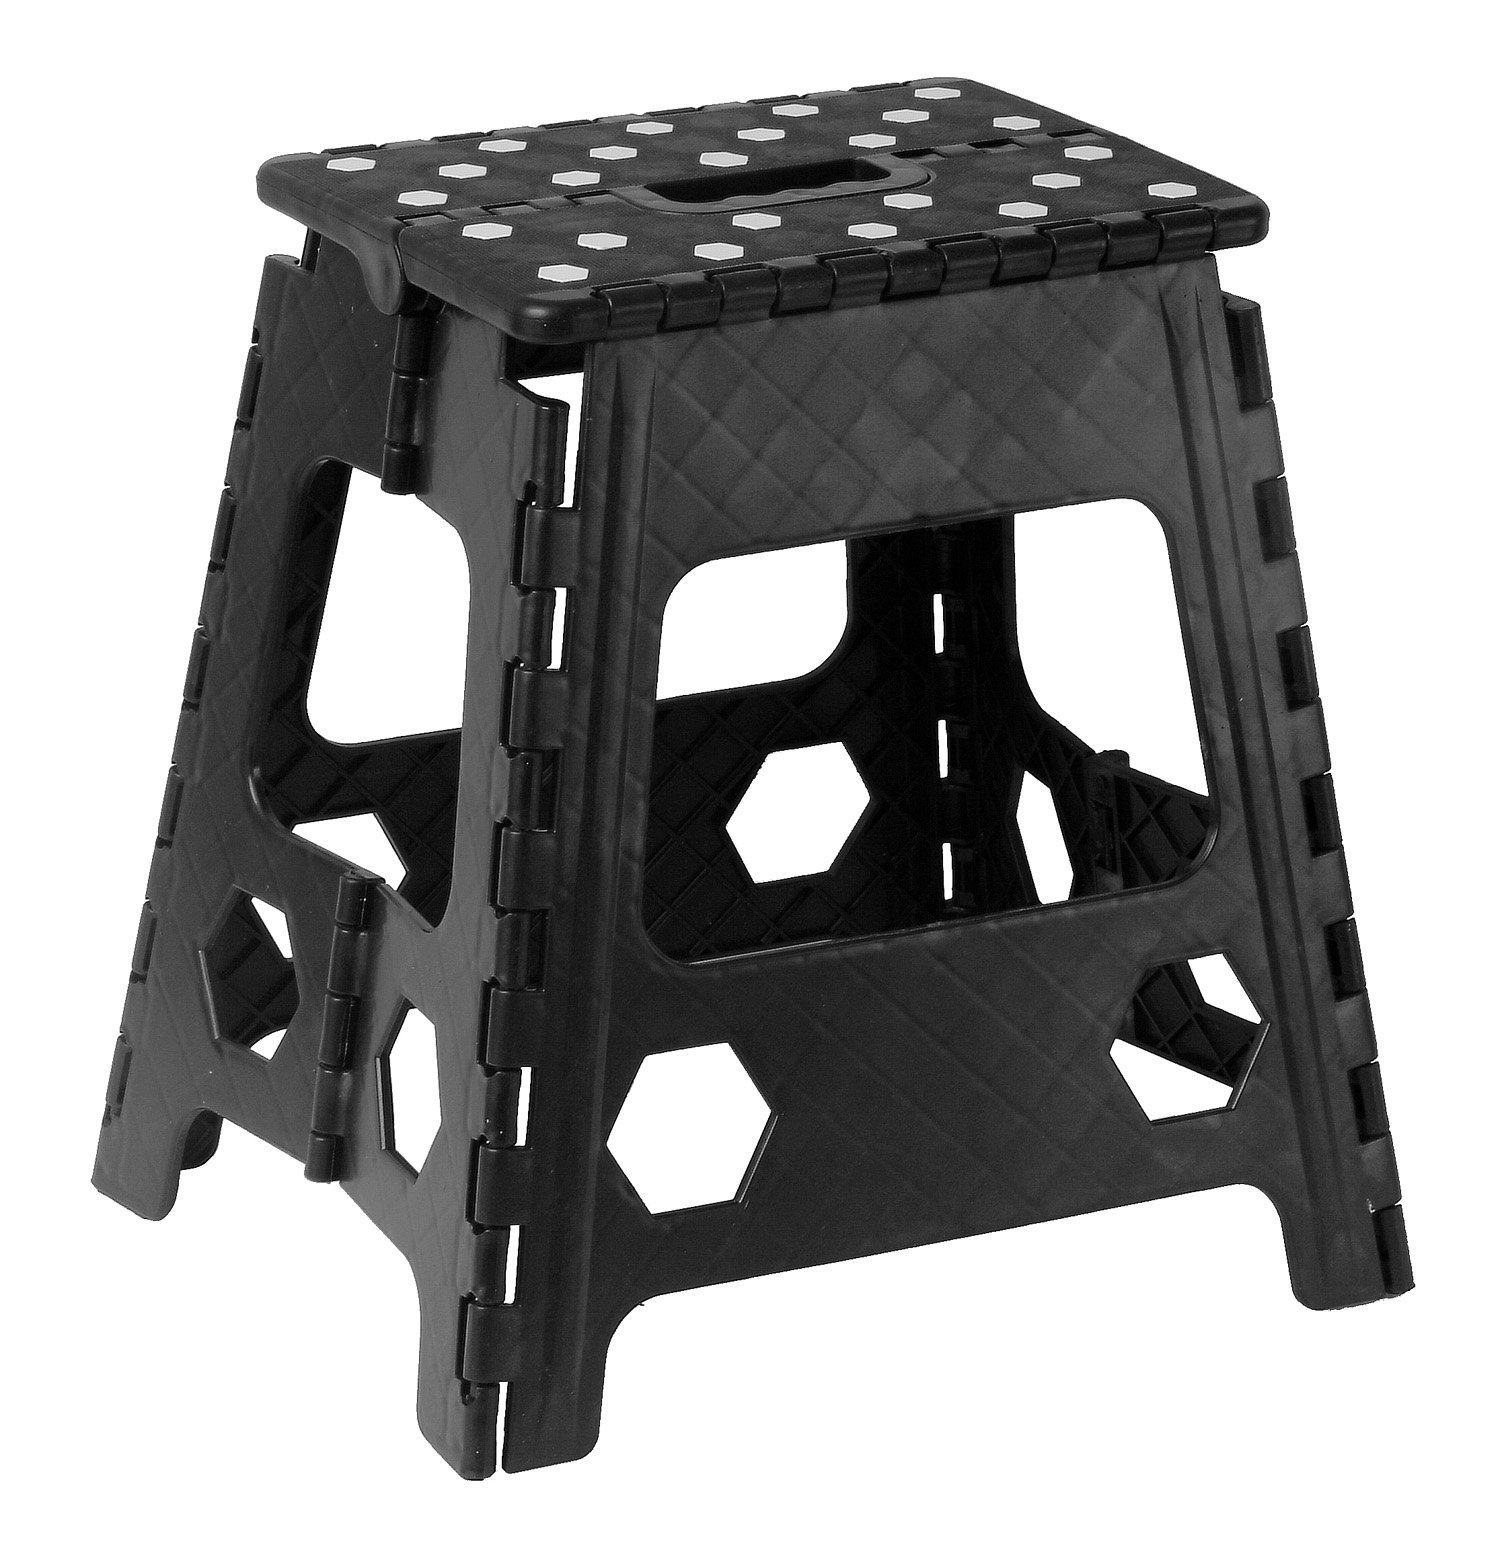 Superior Performance Folding Step Stool 15 Inch Anti Slip Dots (Black)